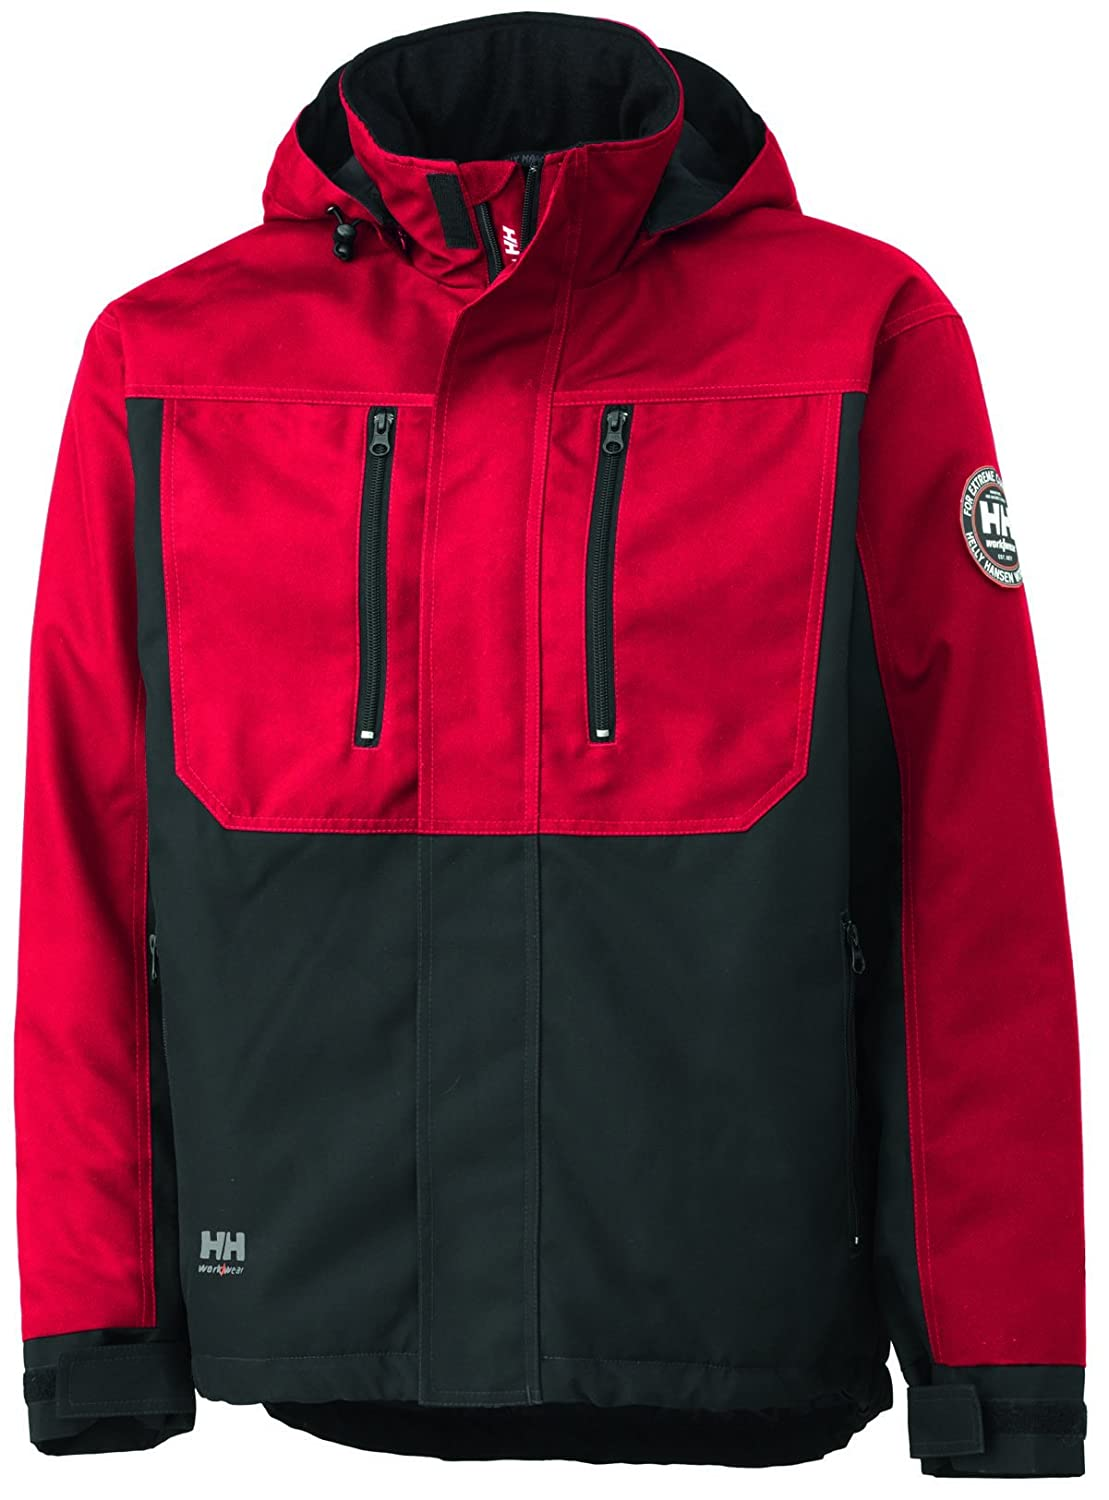 Helly Hansen Workwear Funktionsjacke Berg Jacket 76201 Winterjacke 130 3XL, 34-076201-130-3XL